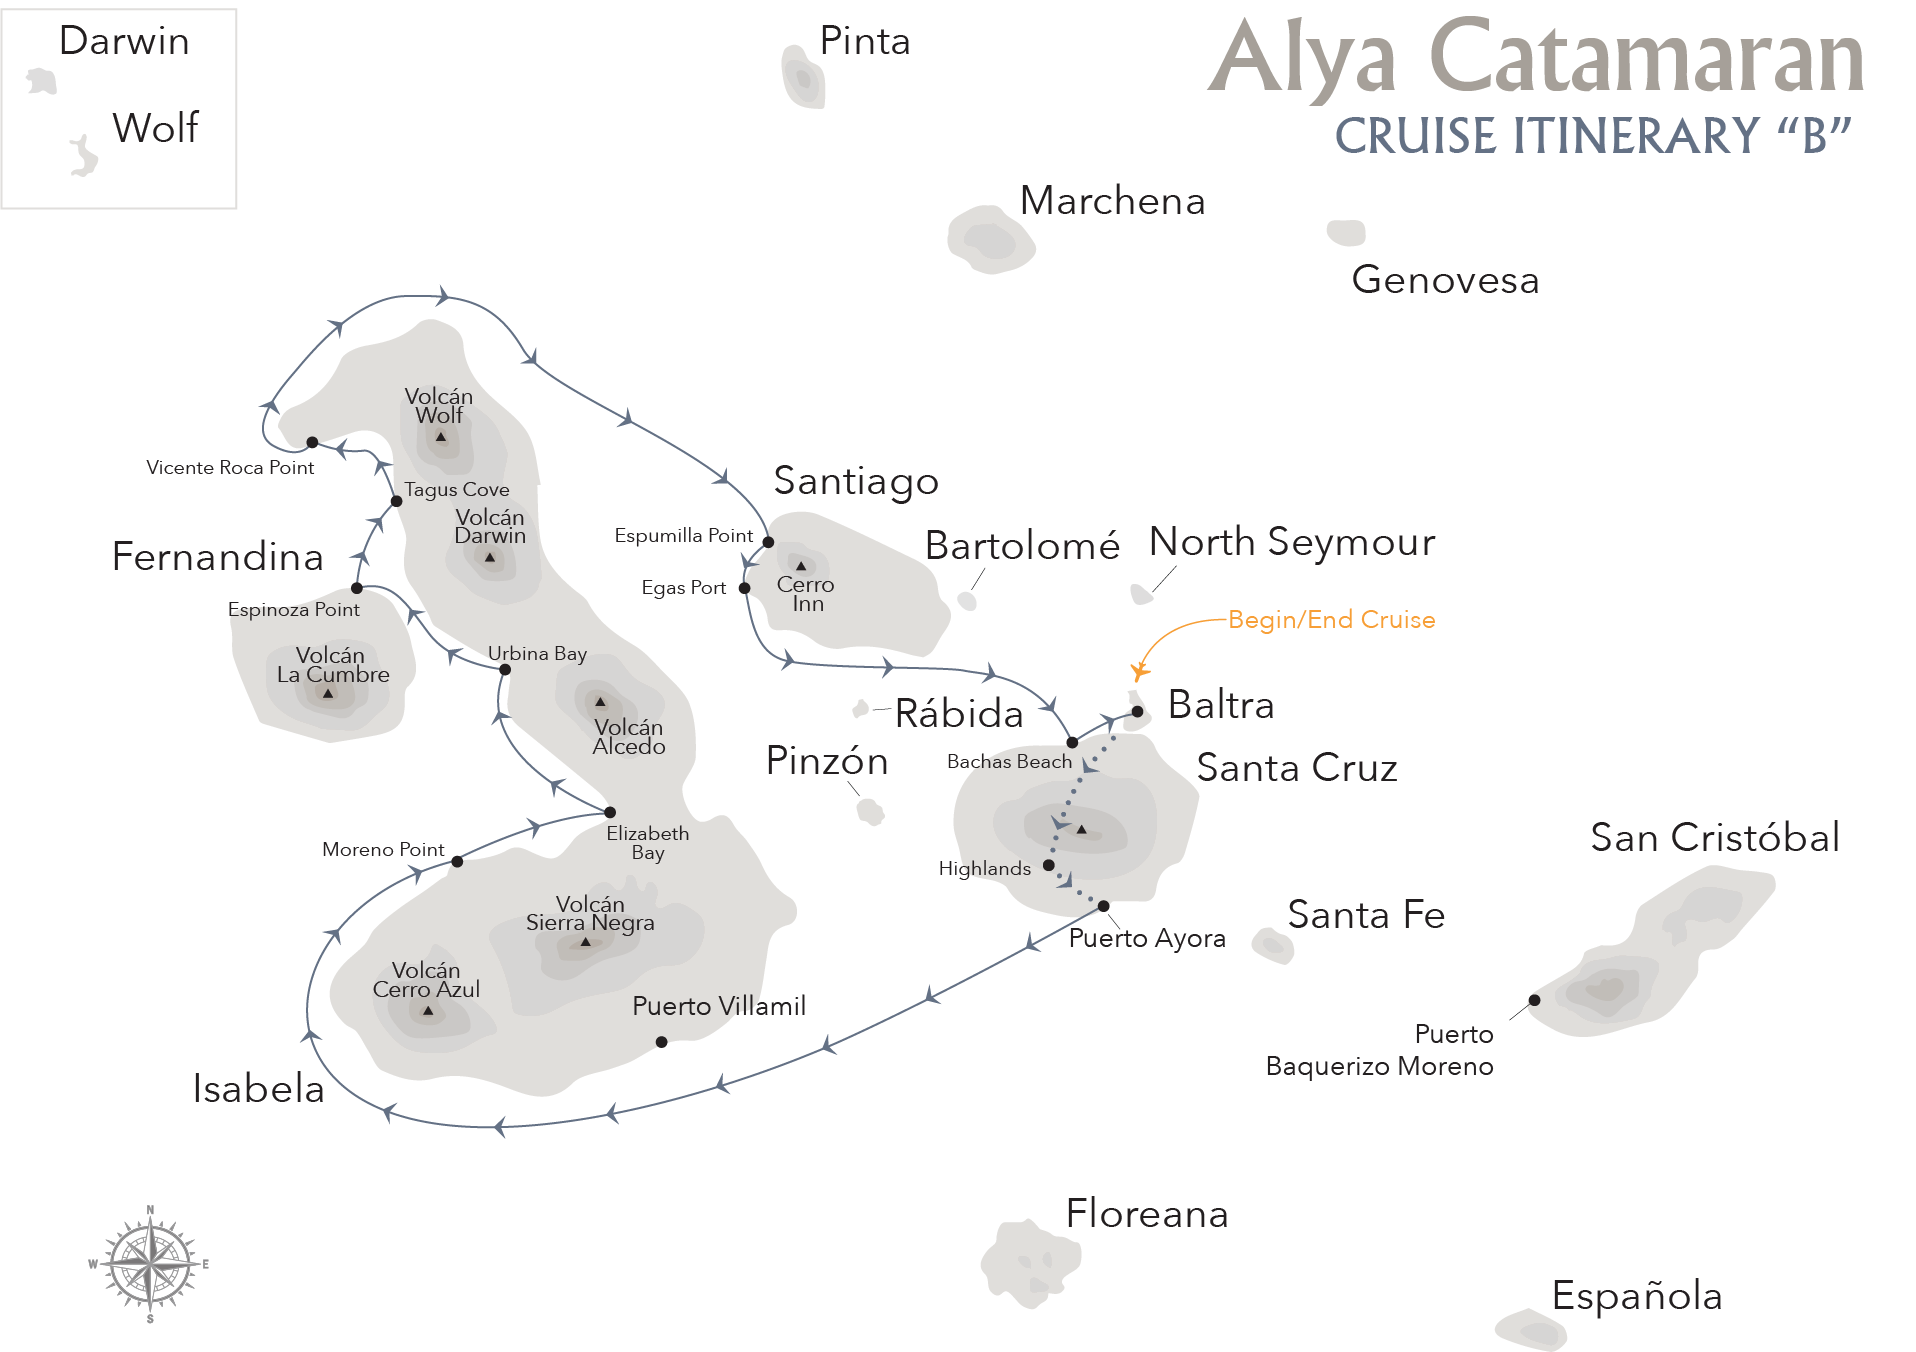 CLOUD FOREST & ALYA LUXURY CATAMARAN ROUTE ITINERARY